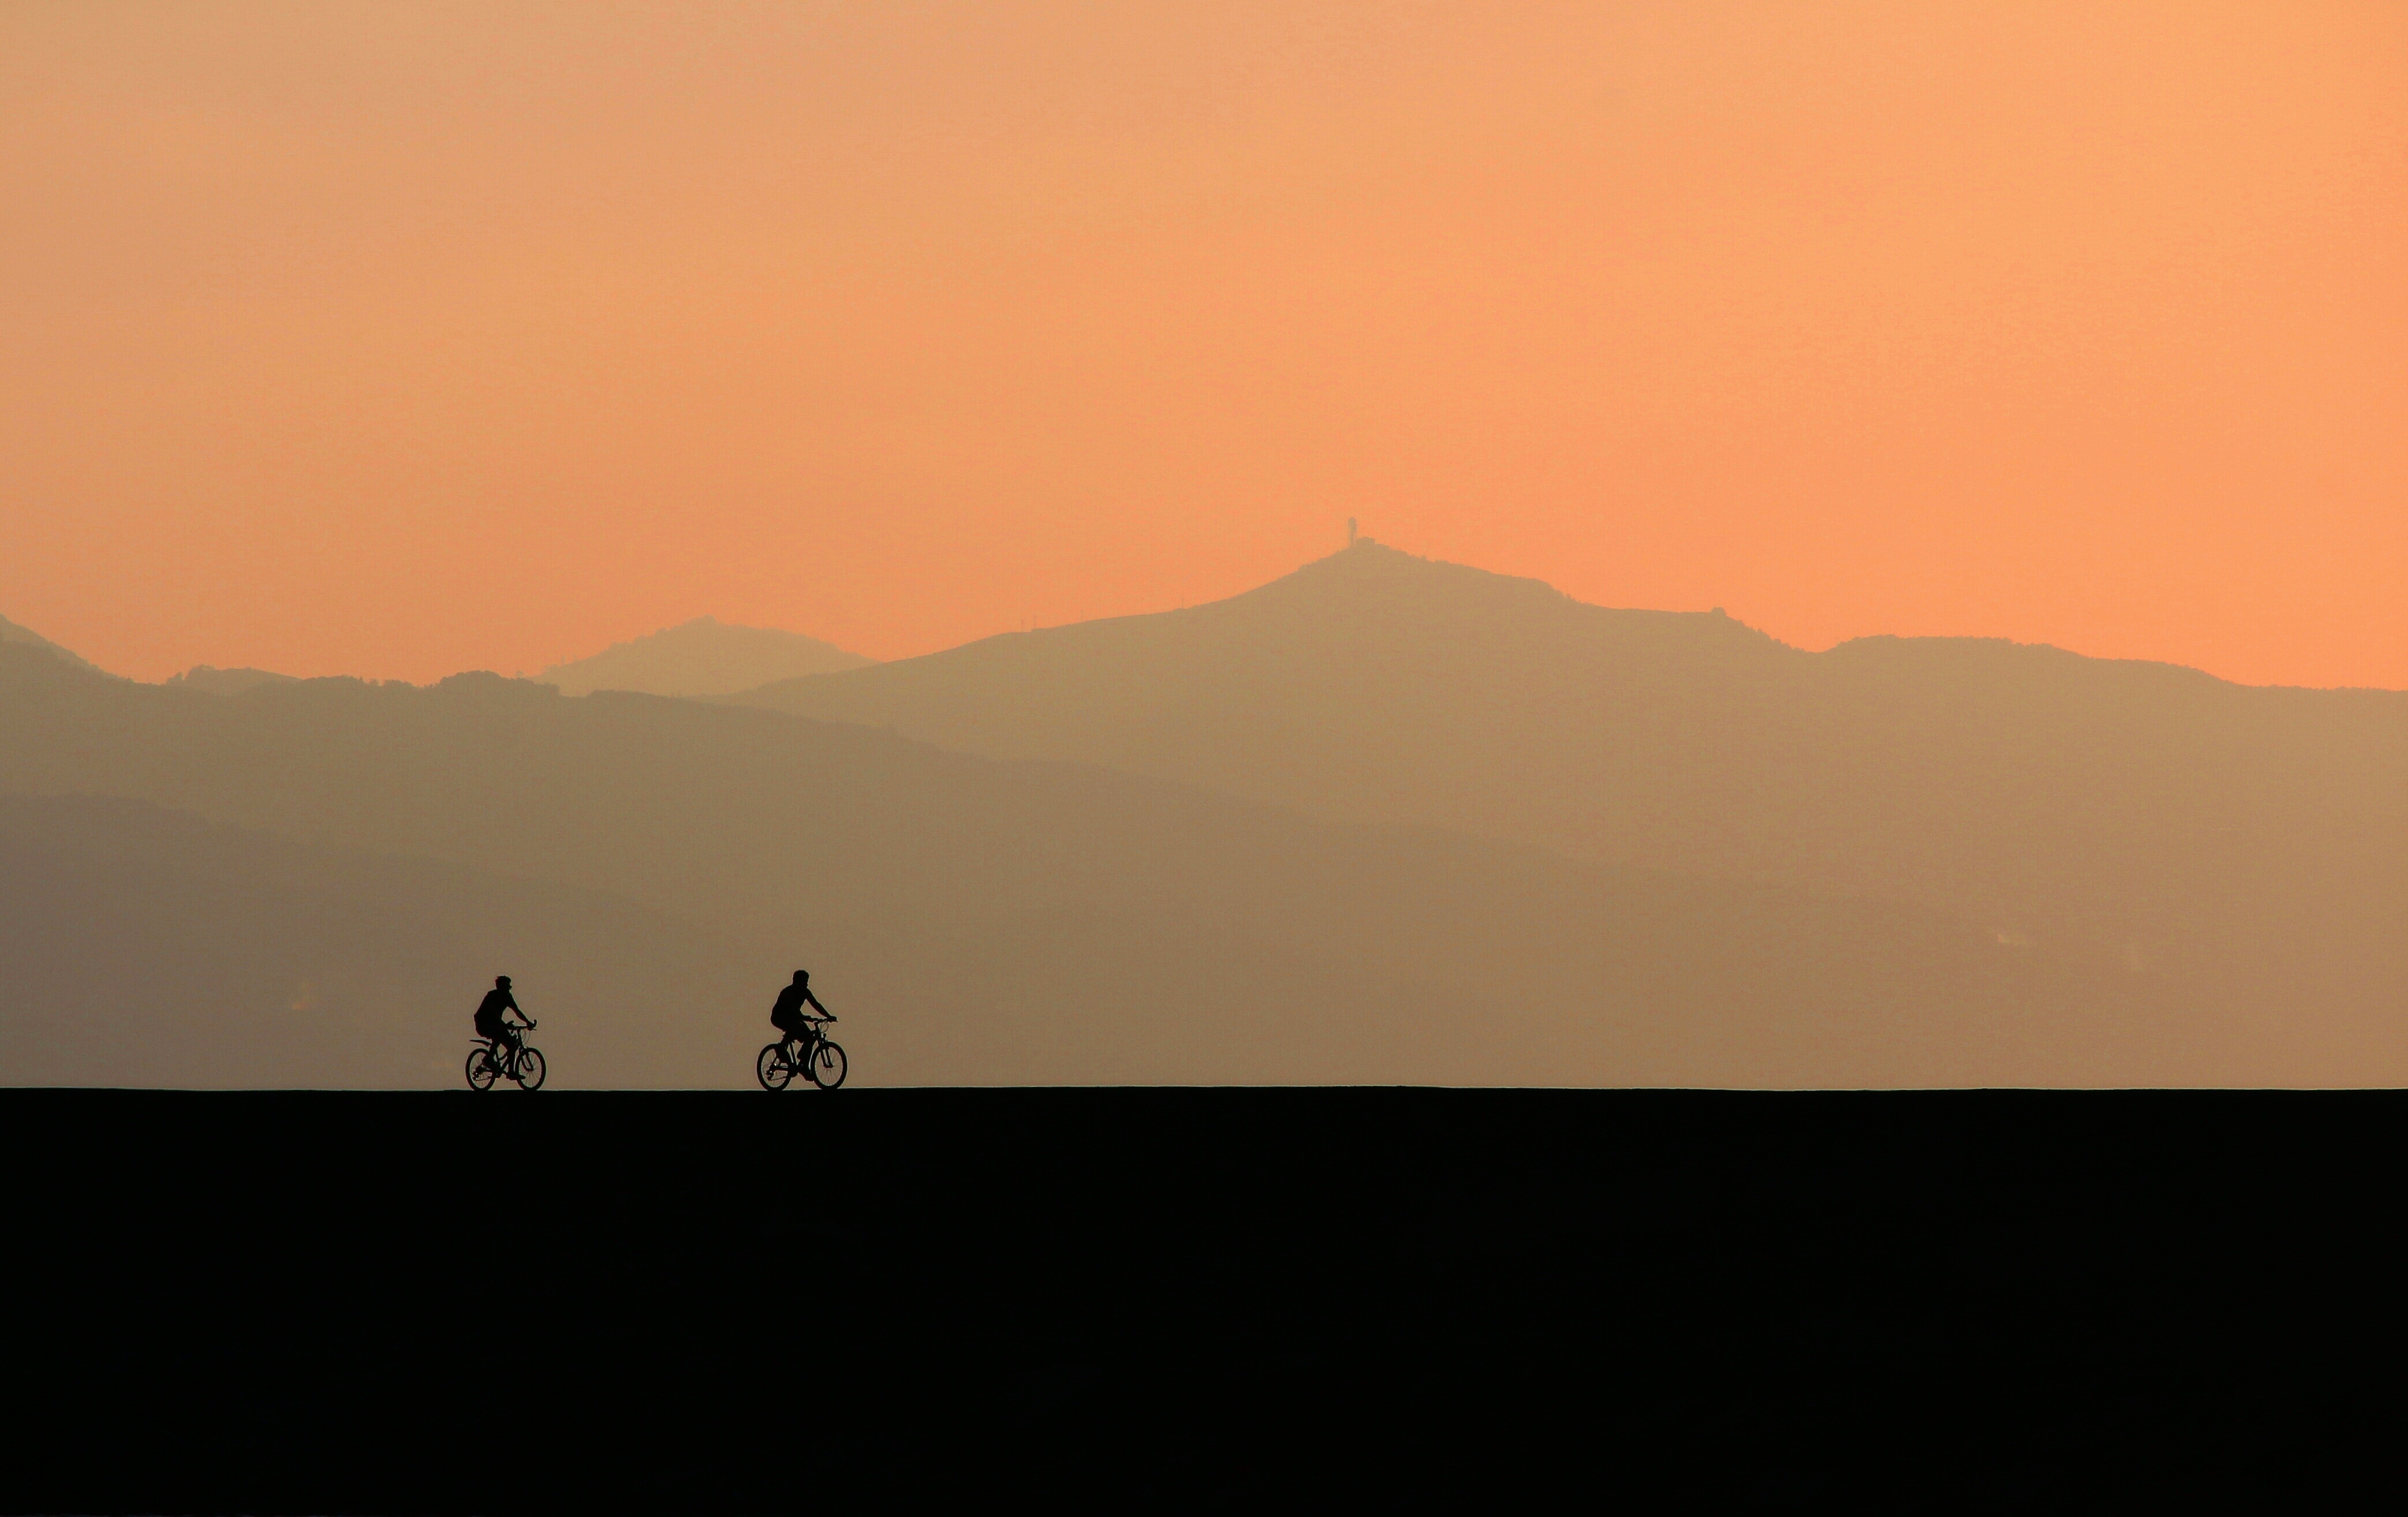 two men cycle backlit by the setting sun